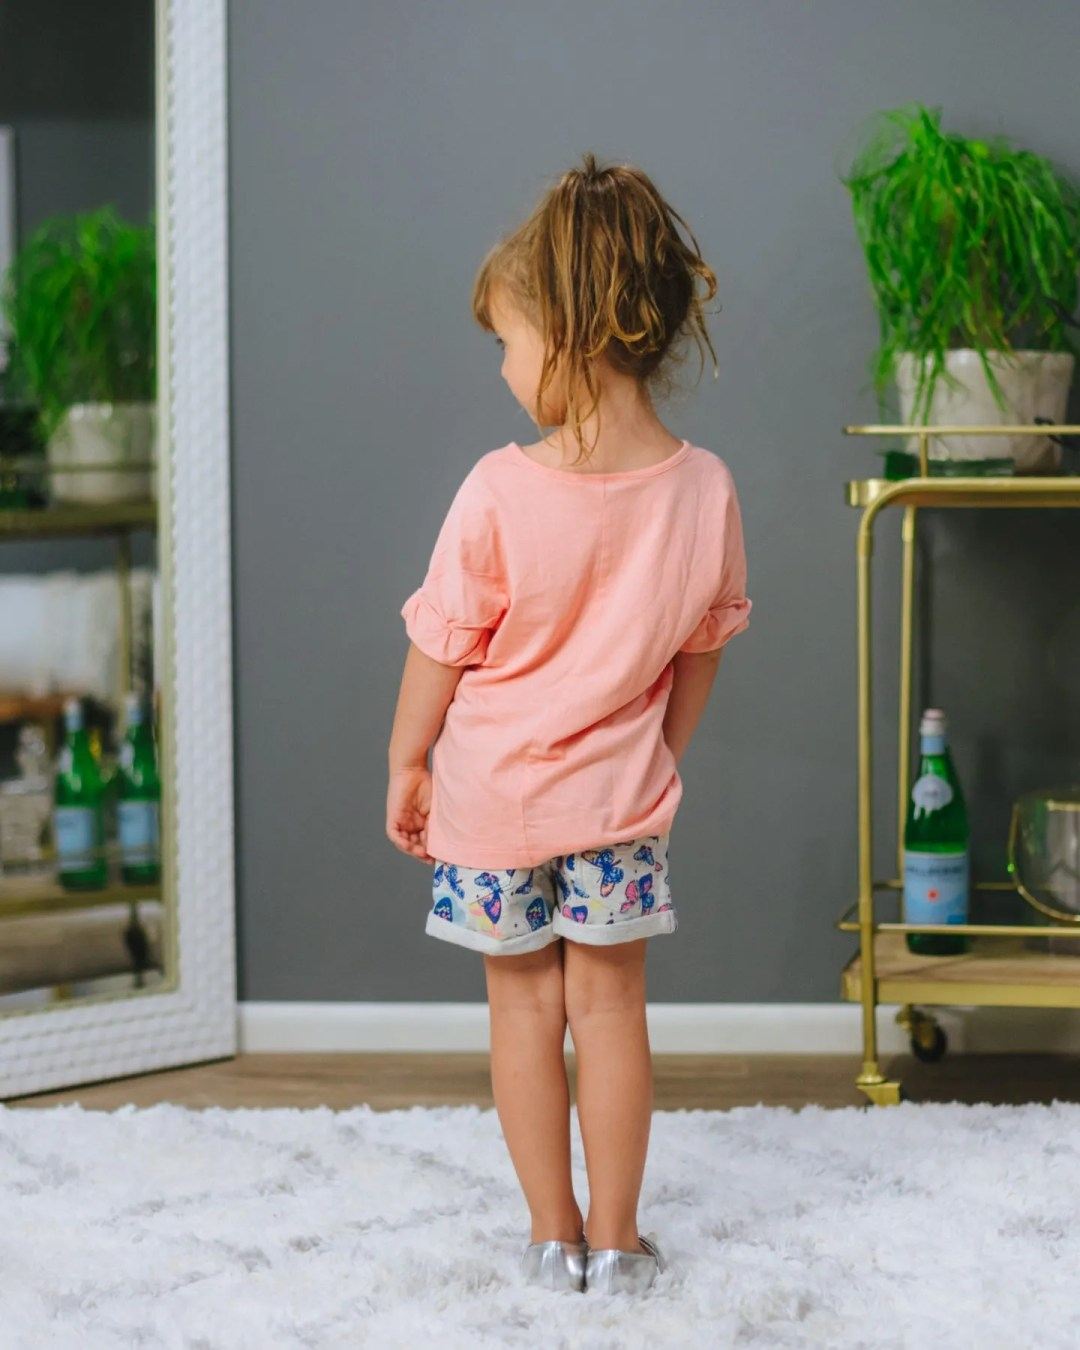 Butterfly shorts